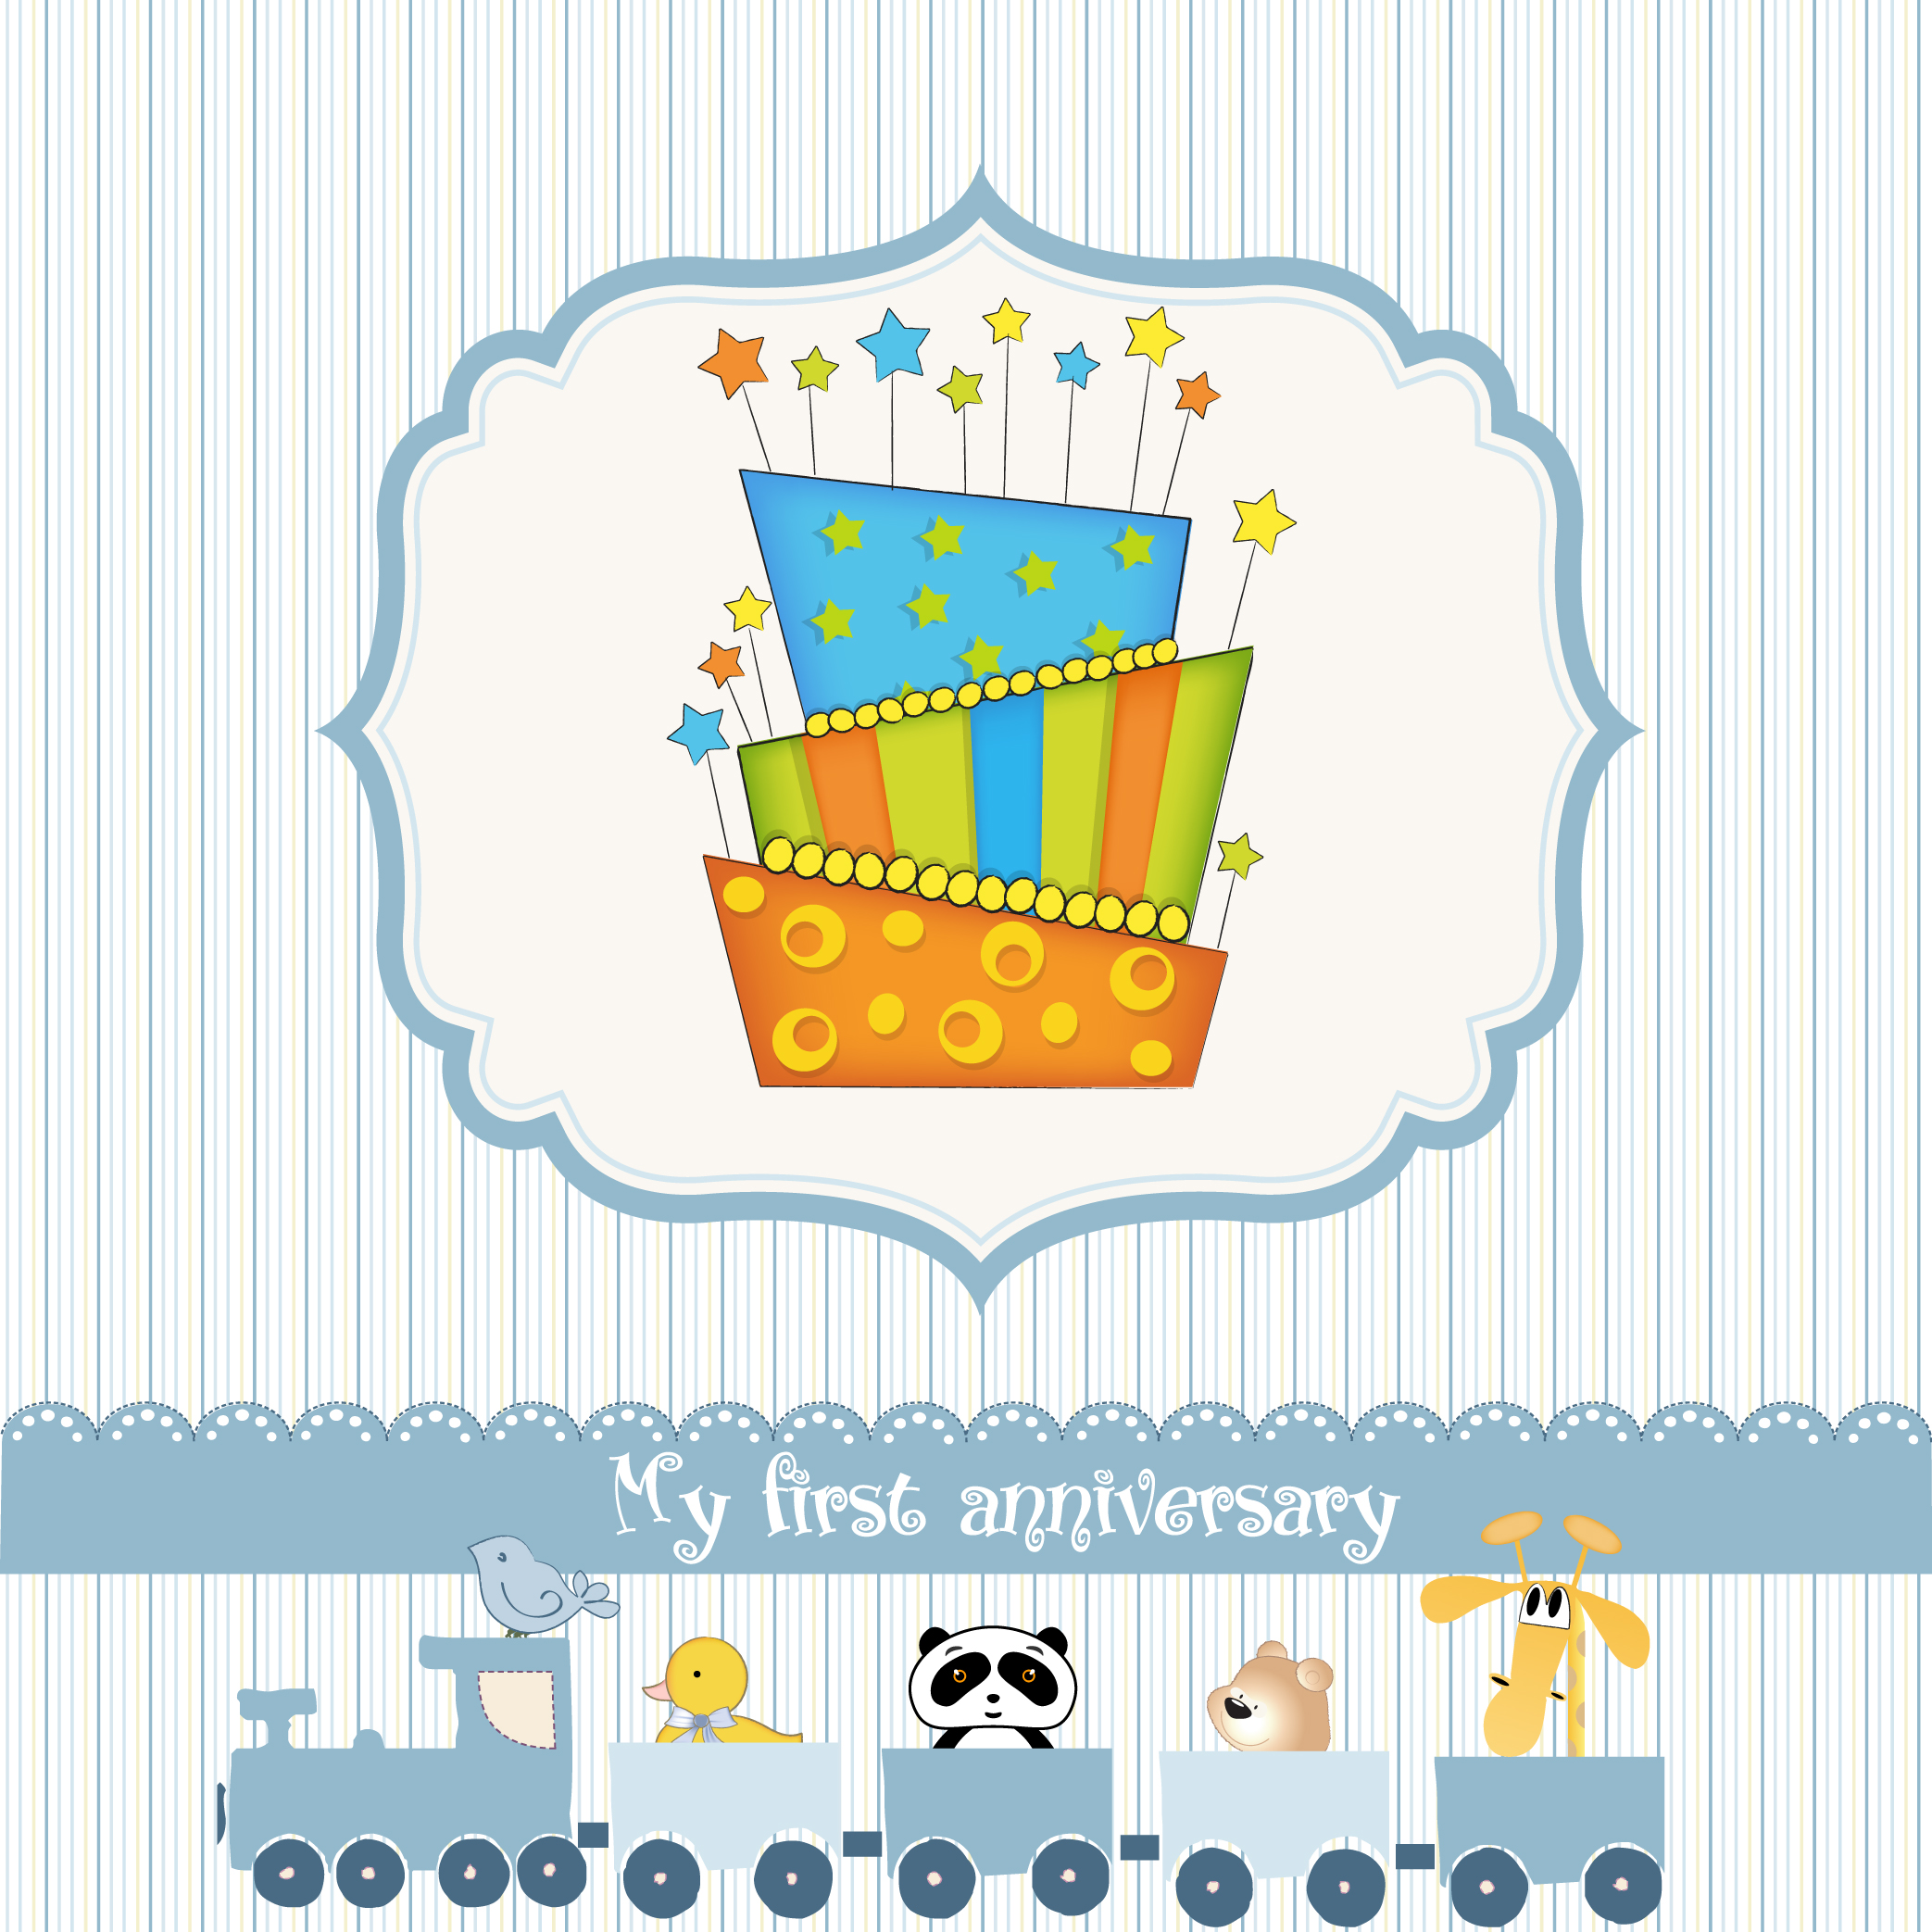 Top Primo compleanno: inviti da stampare per la festa - Blogmamma.it  OM11